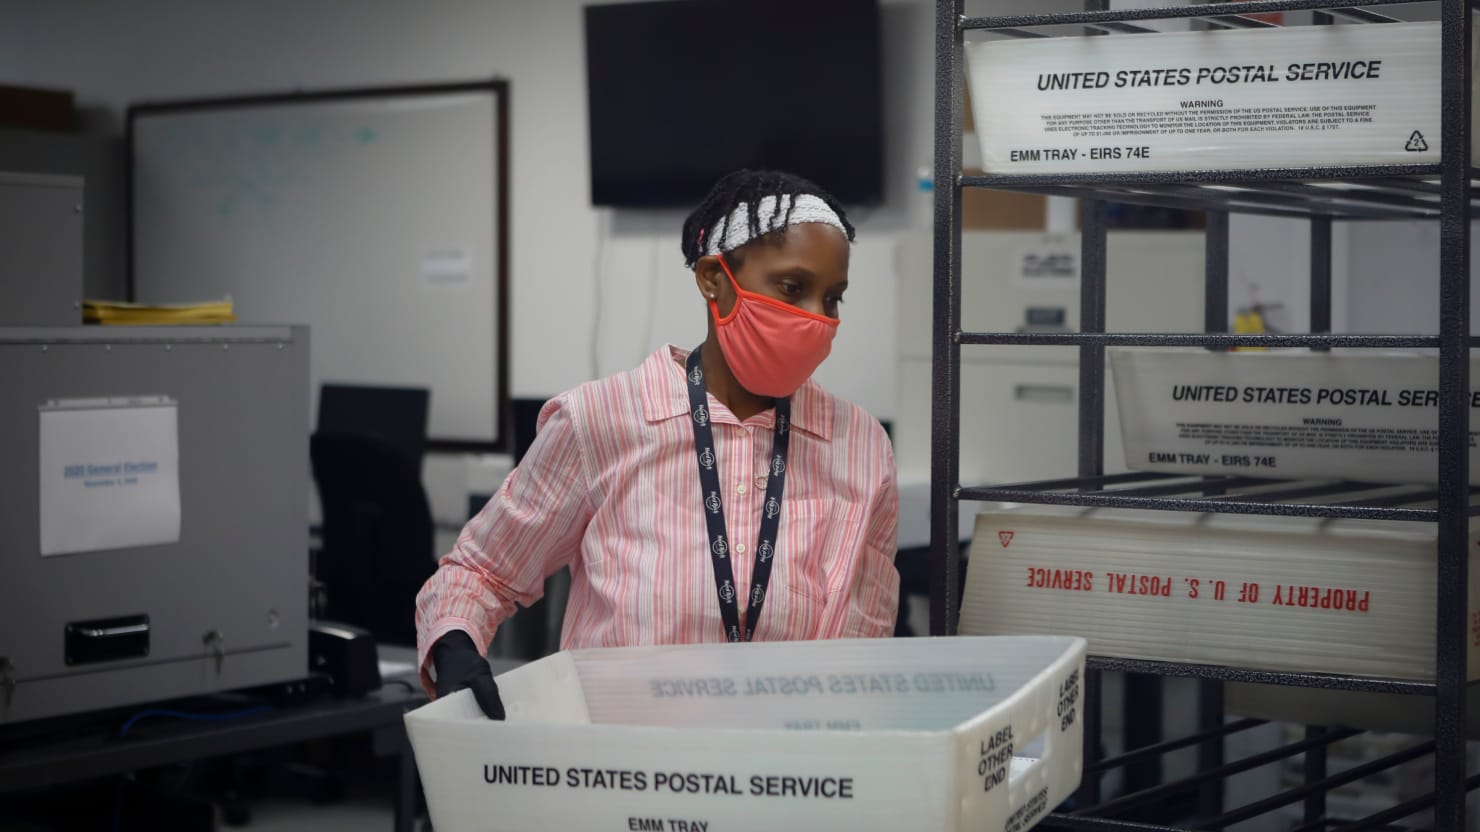 U.S. District Judge Orders USPS to Sweep Some Processing Centers for Stray Ballots